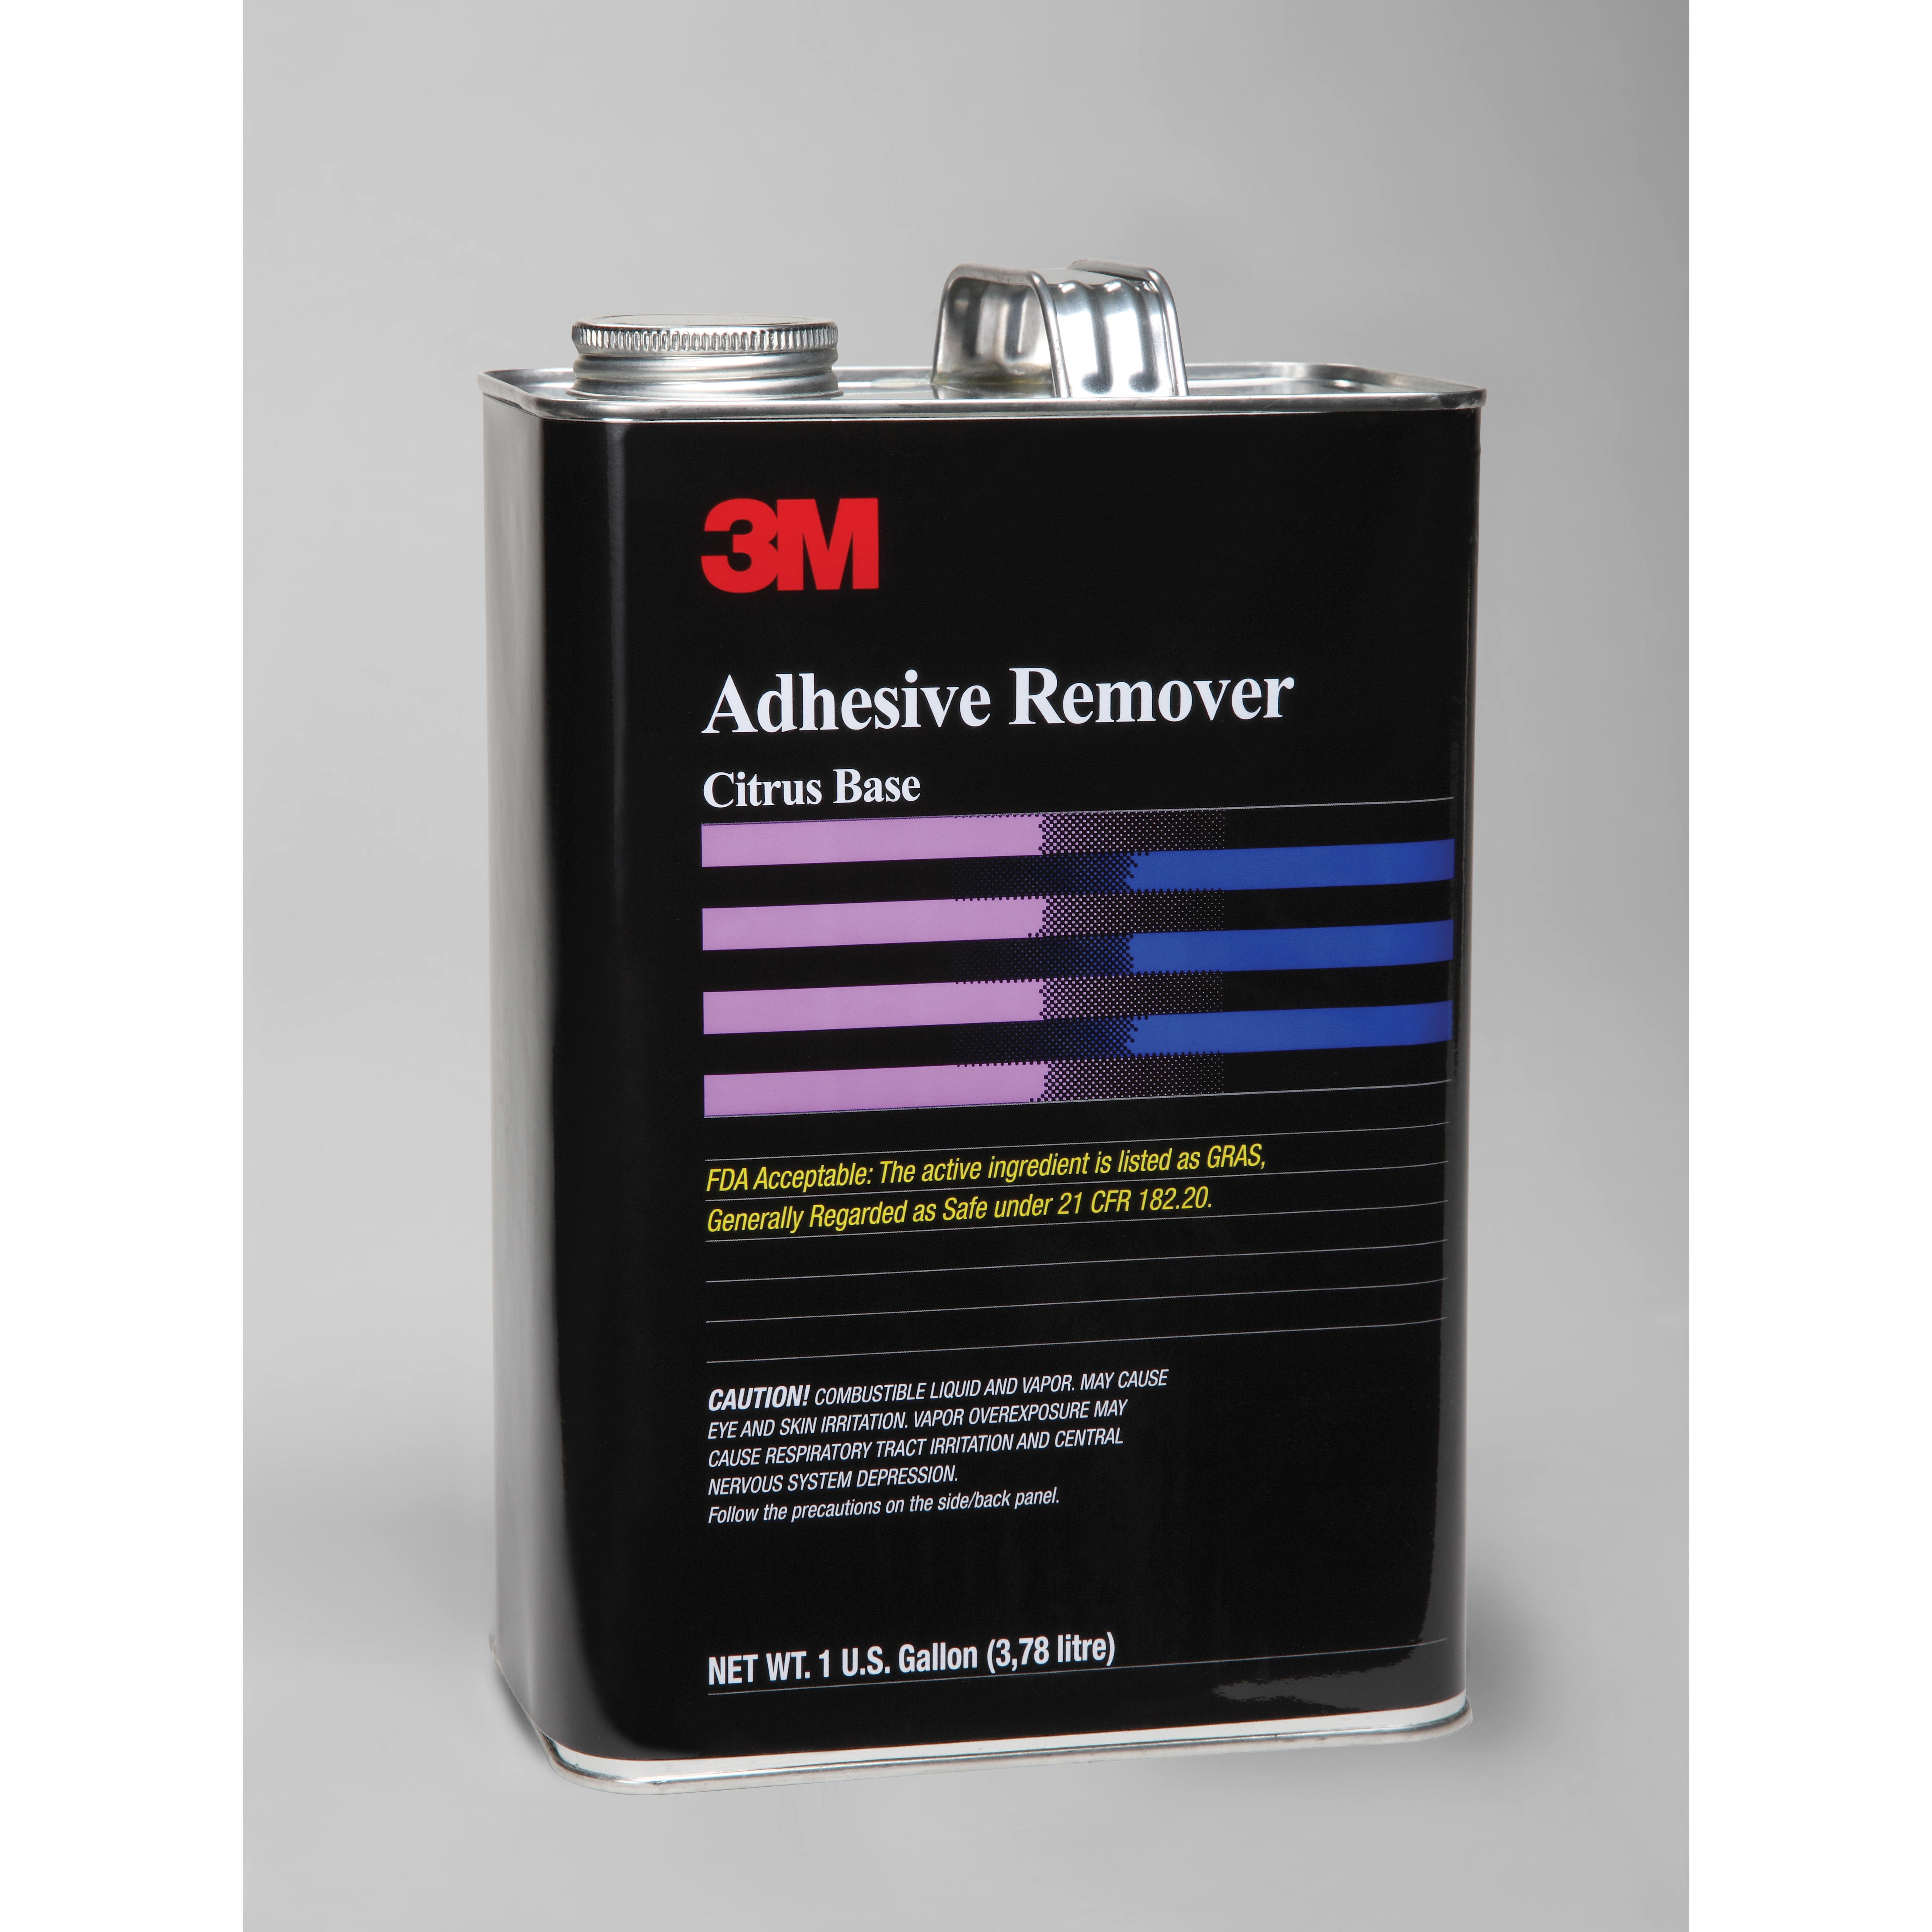 3M™ 021200-49142 ADH REM - BULK Flammable Adhesive Remover, 1 gal Can, Liquid, Pale Yellow, Citrus